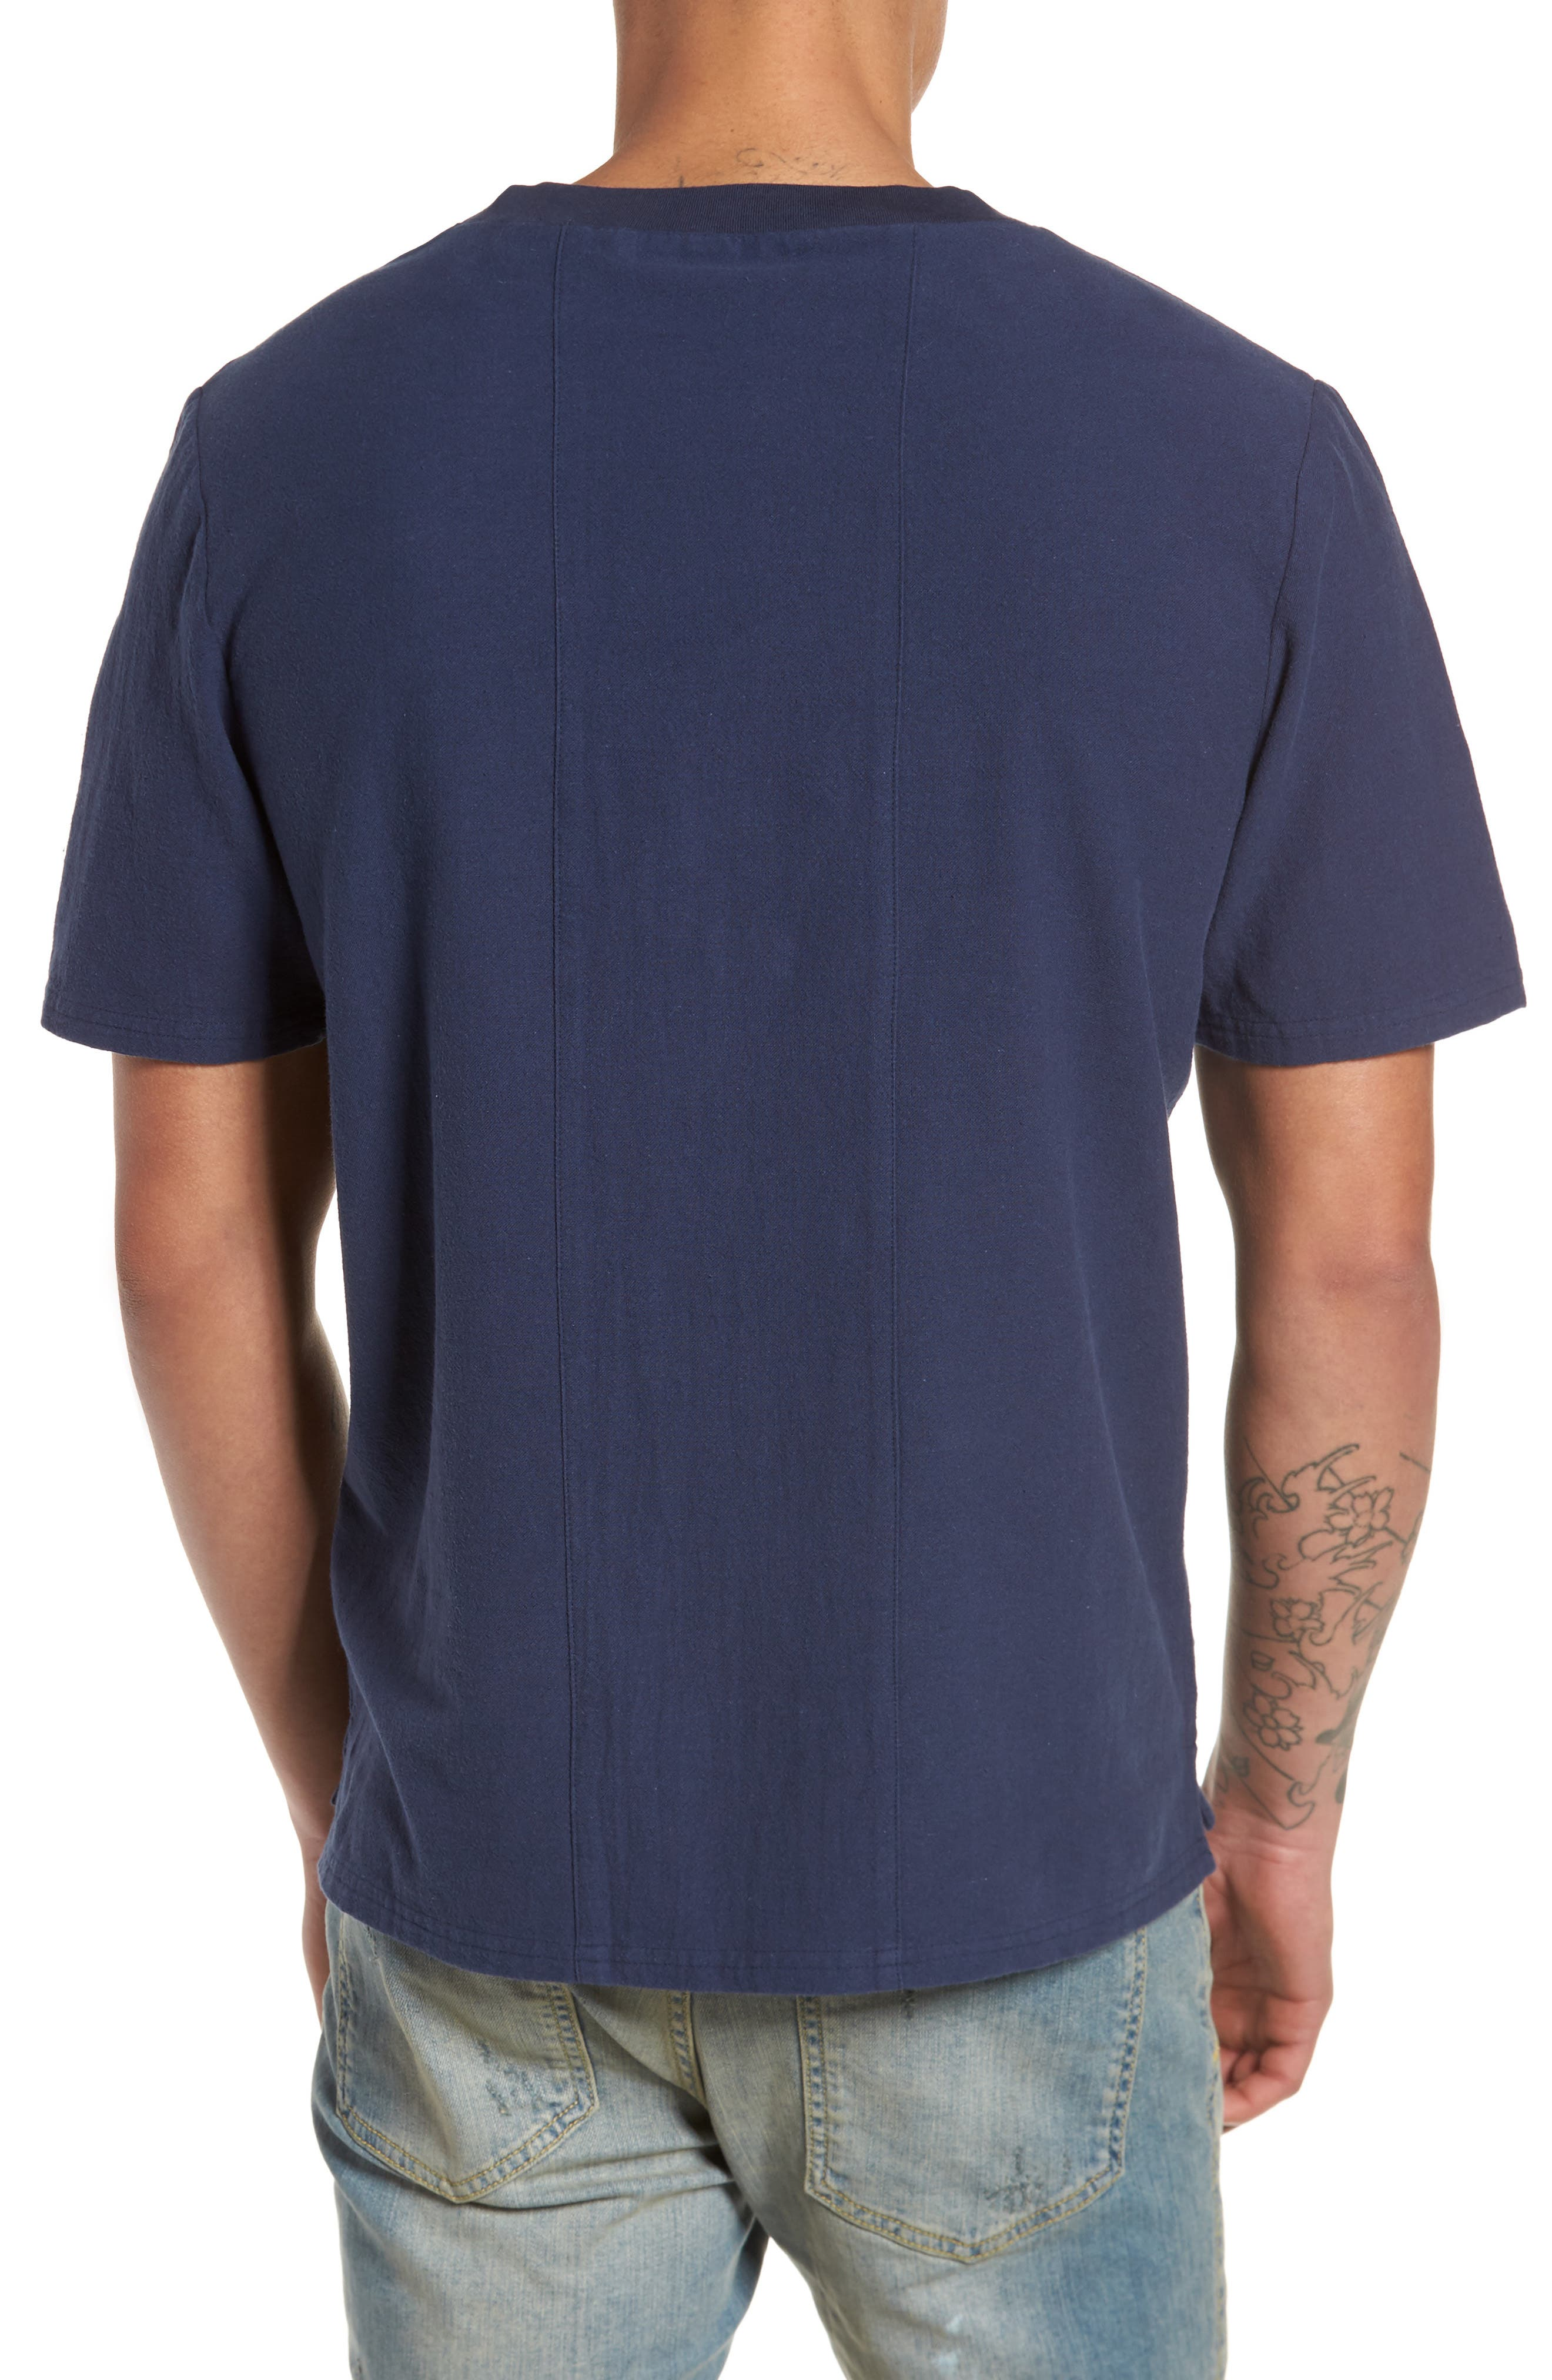 Broads Woven T-Shirt,                             Alternate thumbnail 2, color,                             Navy